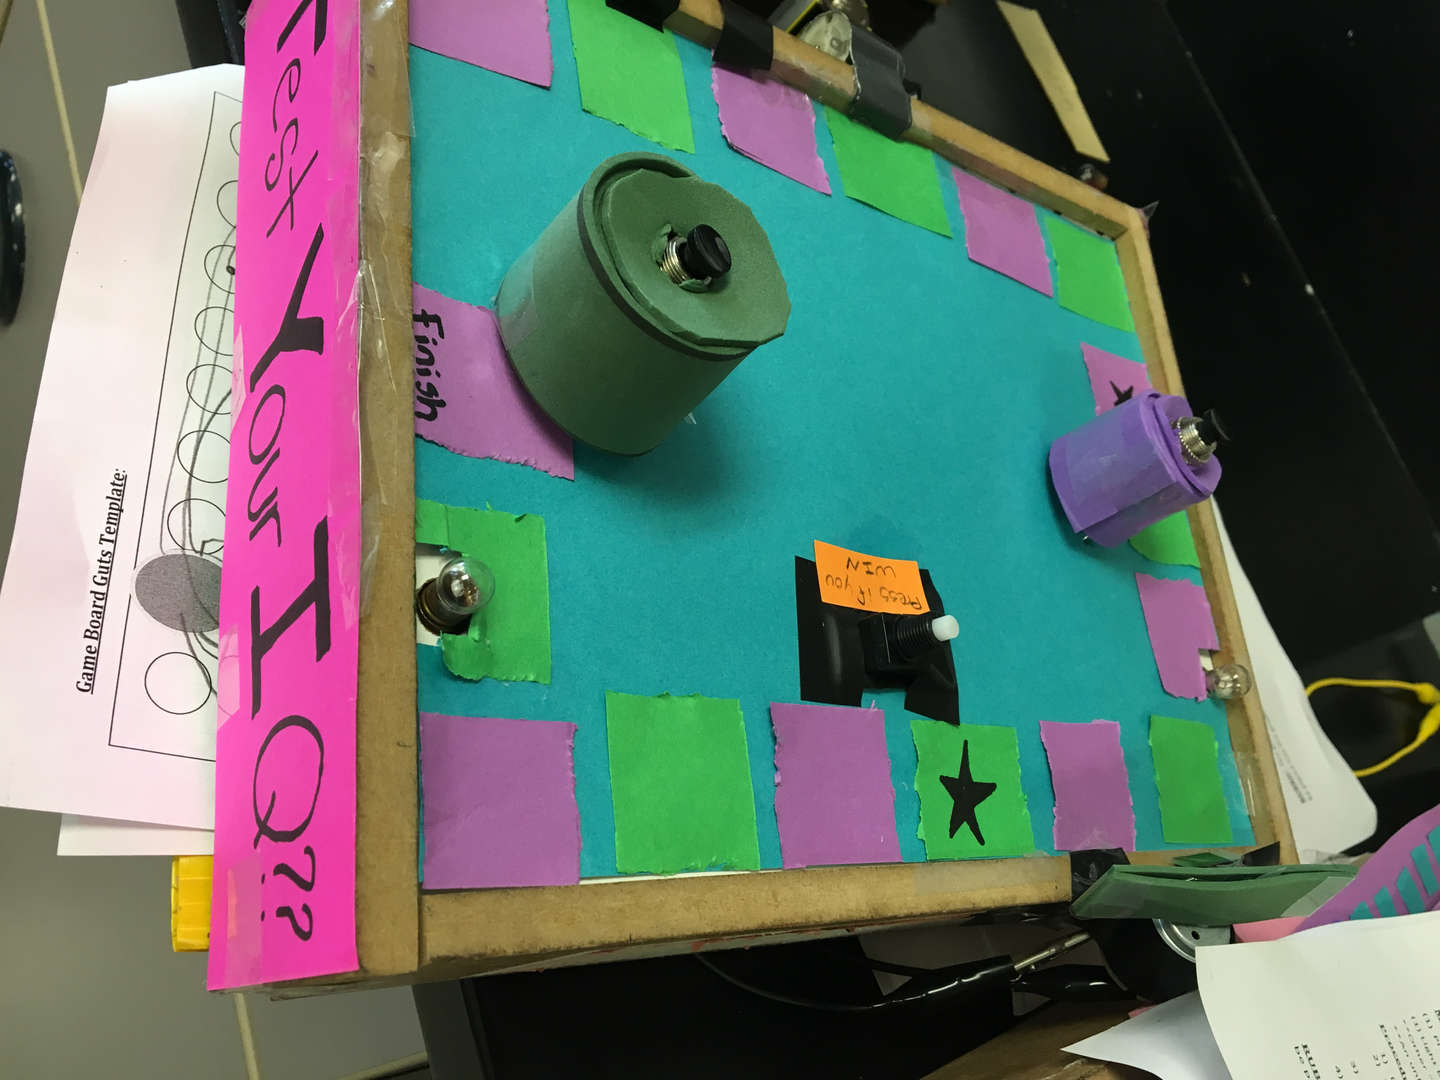 Electronic board games, created by students